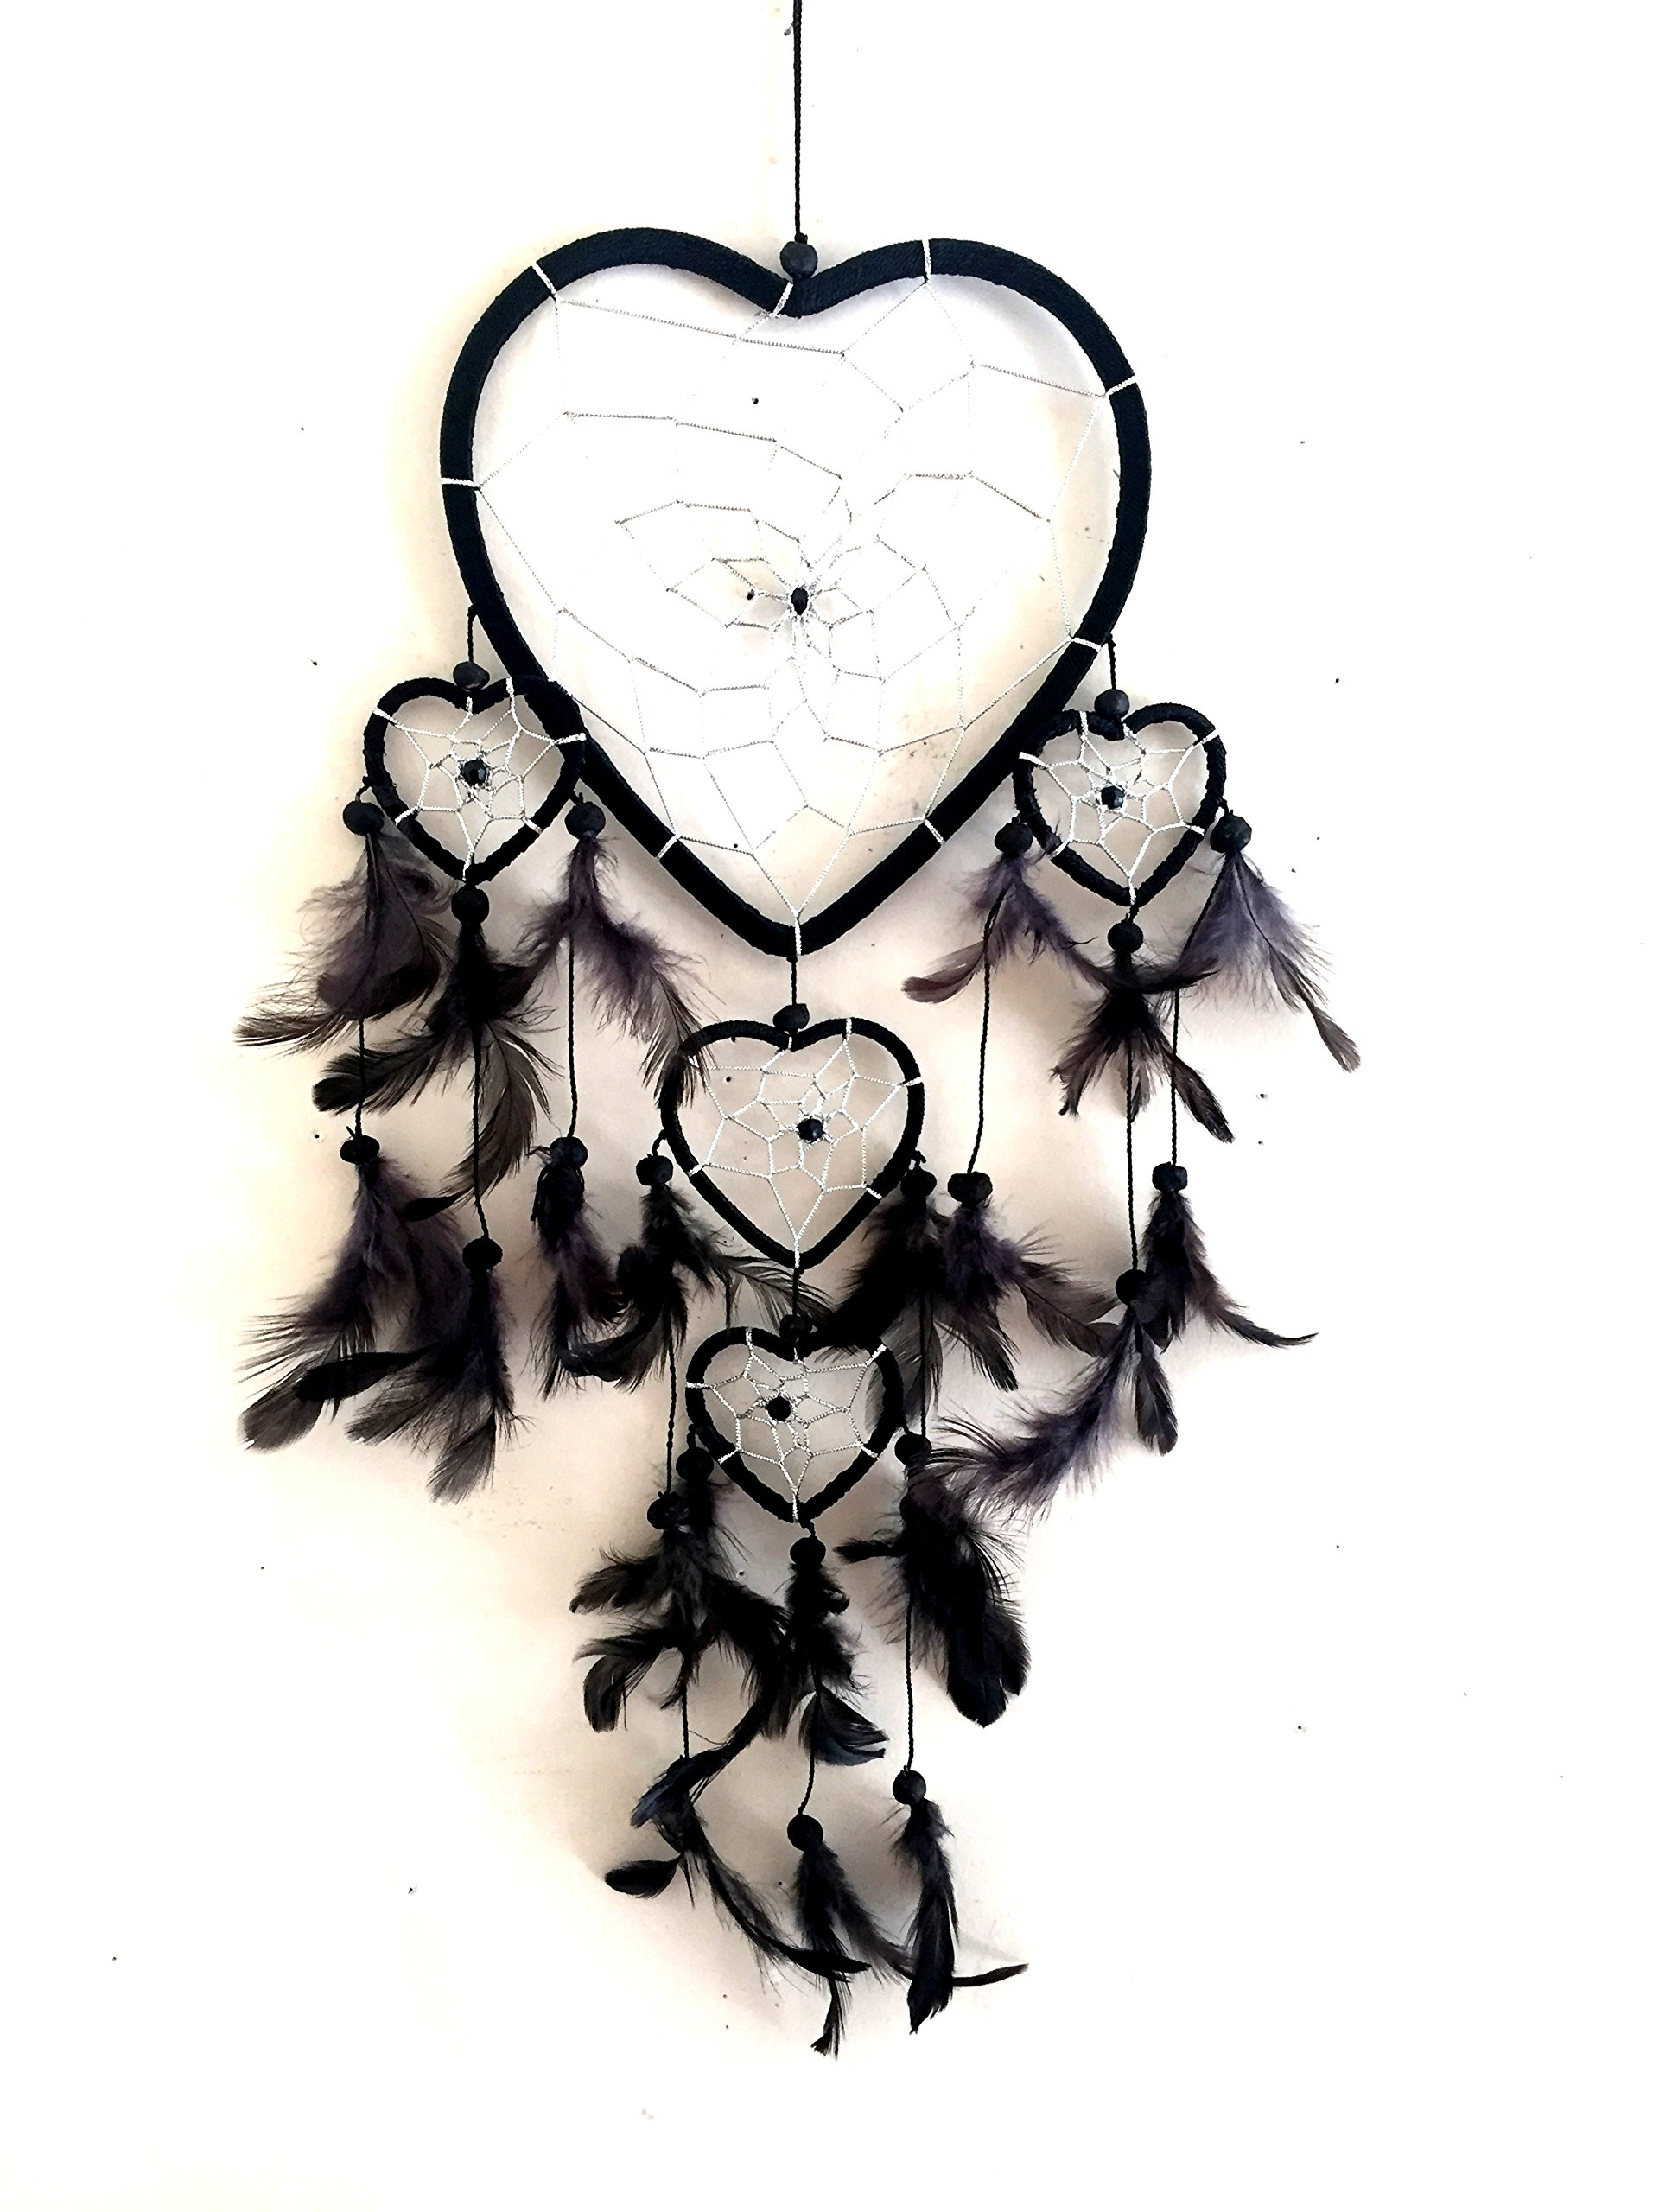 "OMA Dream Catcher - Hand Made BLACK Feather Dream Catcher Heart Shaped With Crystal Beads - 7"" Diameter & 24"" Long - OMA FEDERAL (TM) BRAND"